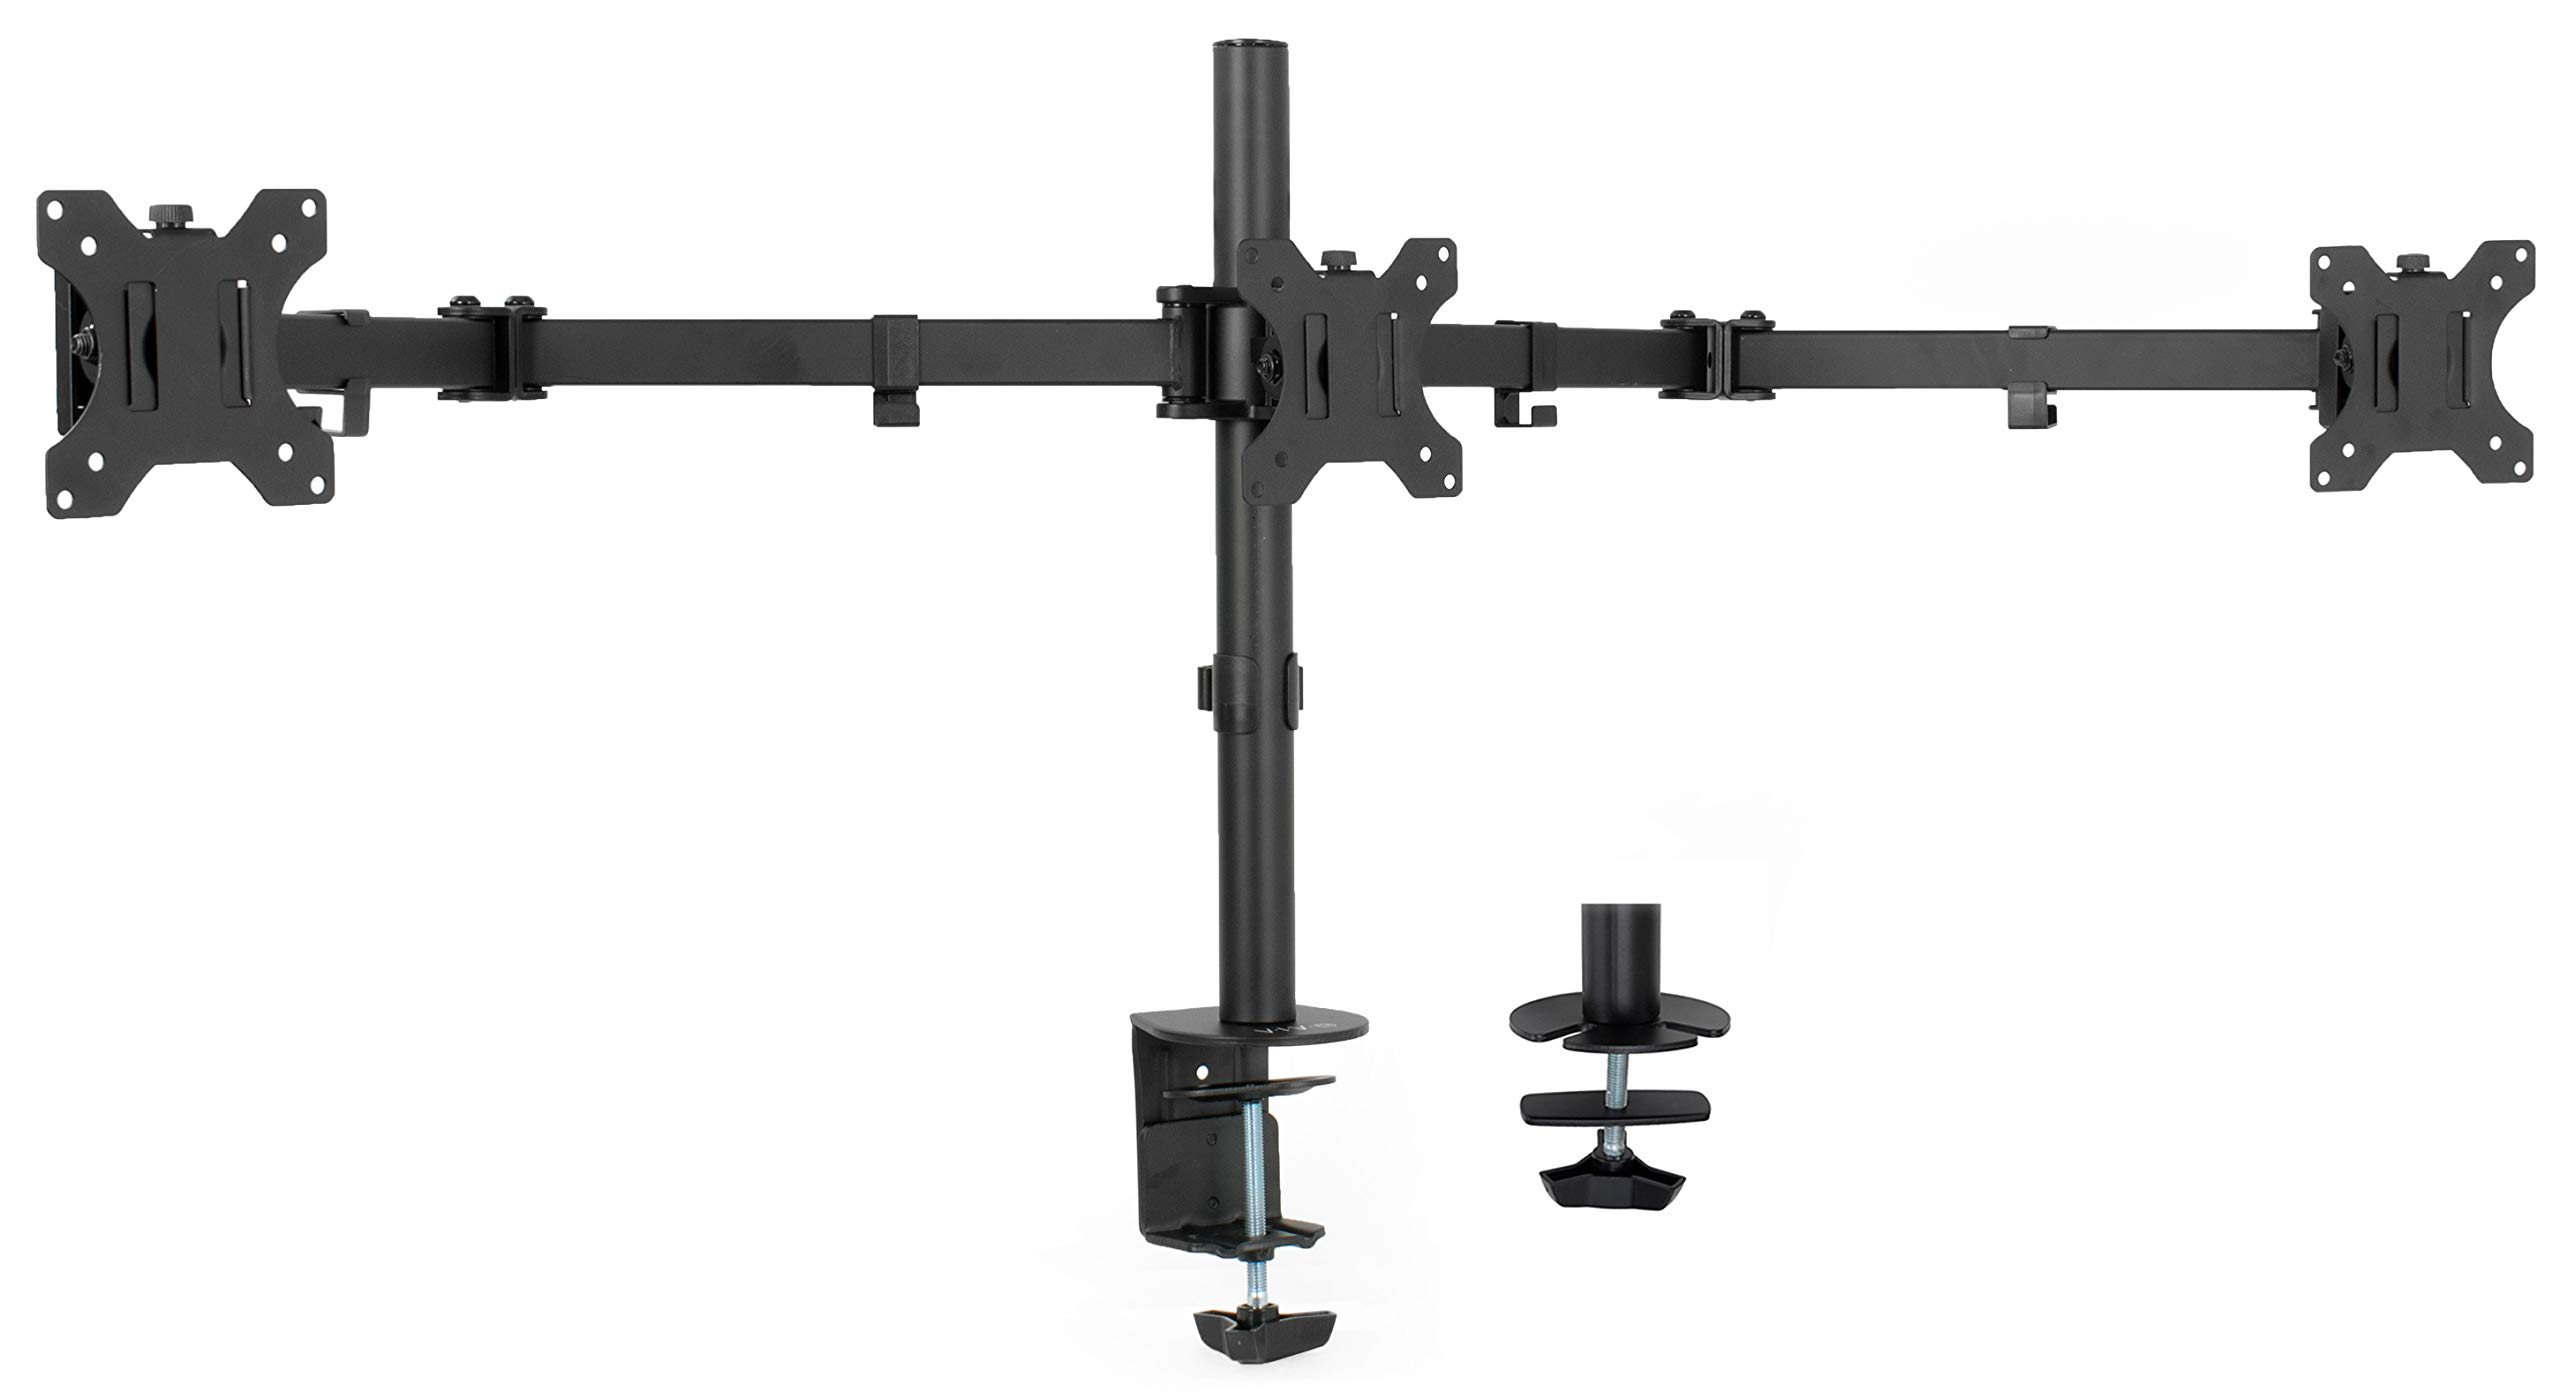 VIVO Black Triple Monitor Adjustable Desk Mount, Articulating Tri Stand Holds 3 Screens up to 24 inches (STAND-V003Y) by VIVO